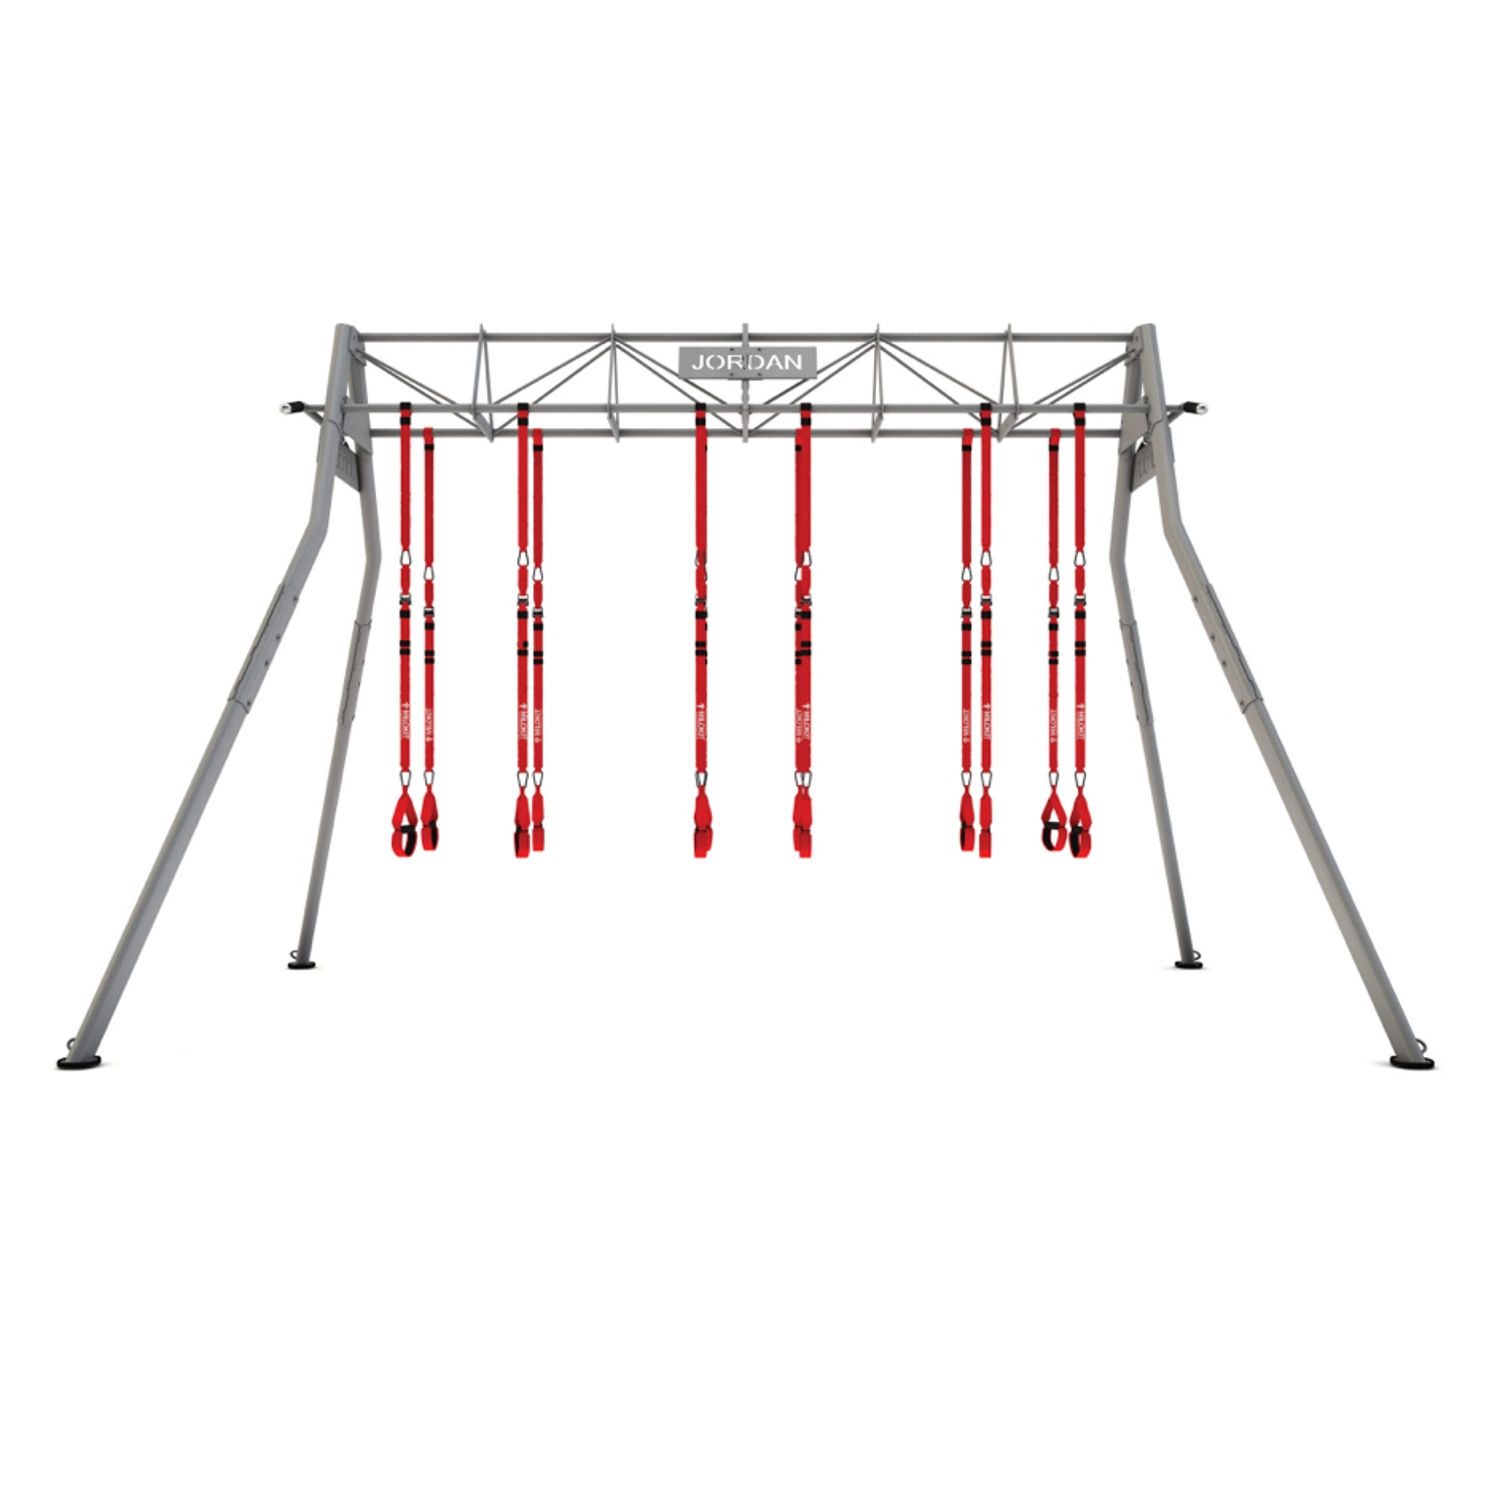 3m Suspension Training Station (Up to 6 Users)